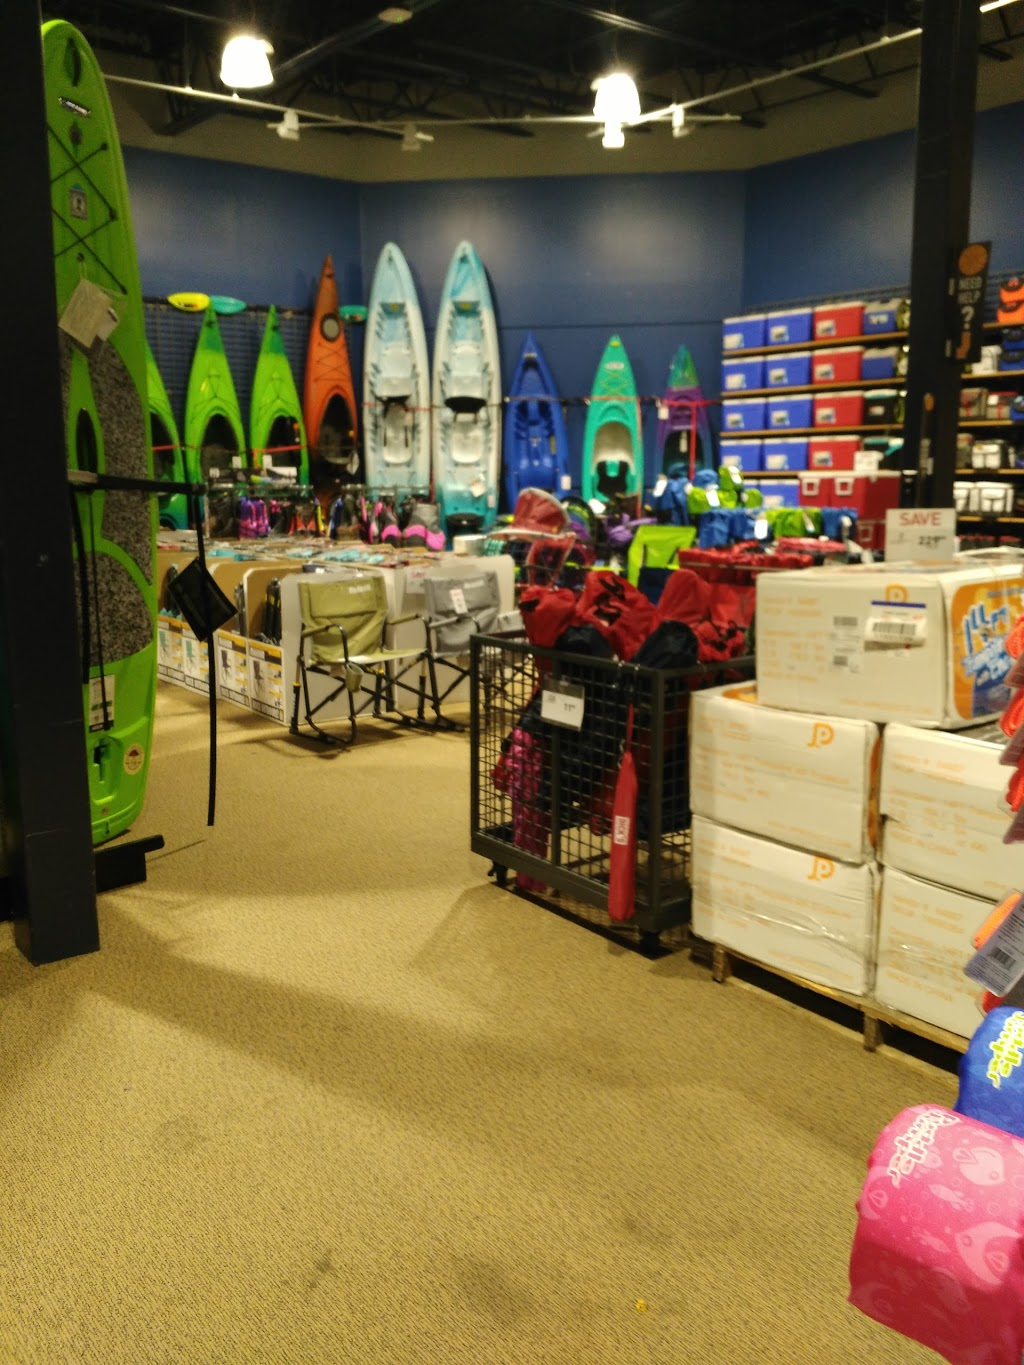 DICKS Sporting Goods - bicycle store  | Photo 8 of 10 | Address: 6020 E 82nd St, Indianapolis, IN 46250, USA | Phone: (317) 576-0300